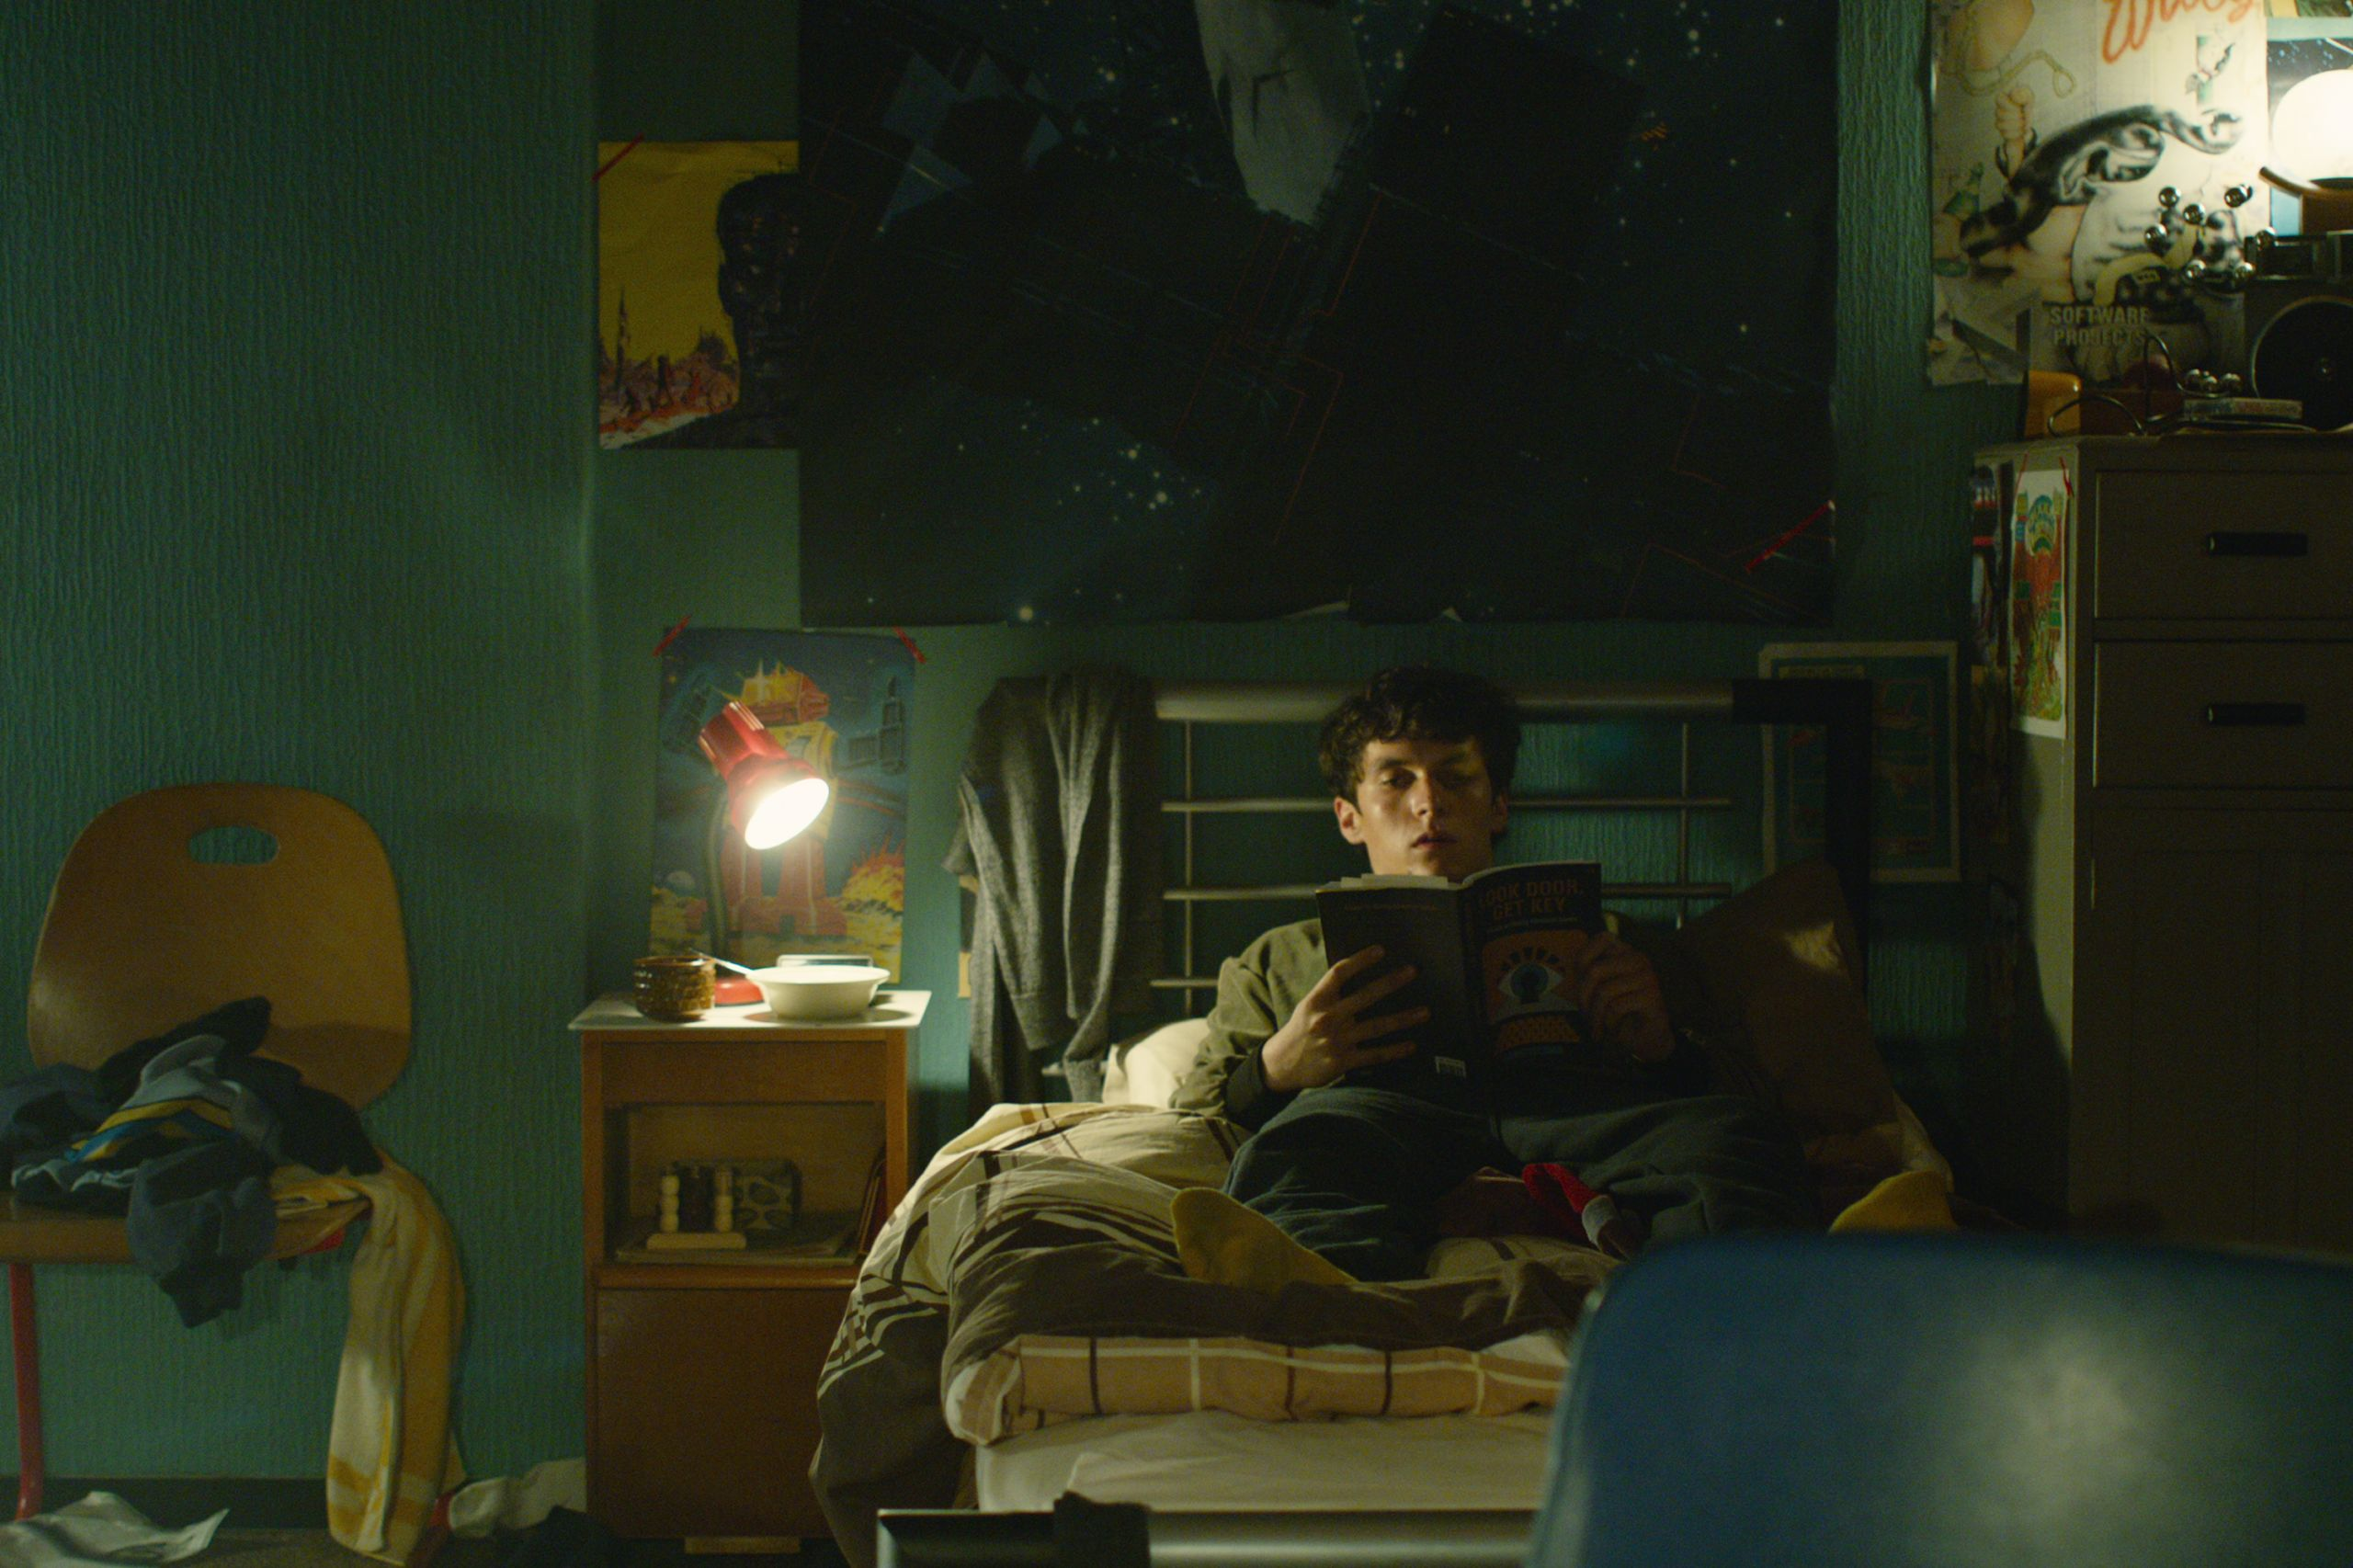 Netflix faces trademark suit over Black Mirror: Bandersnatch